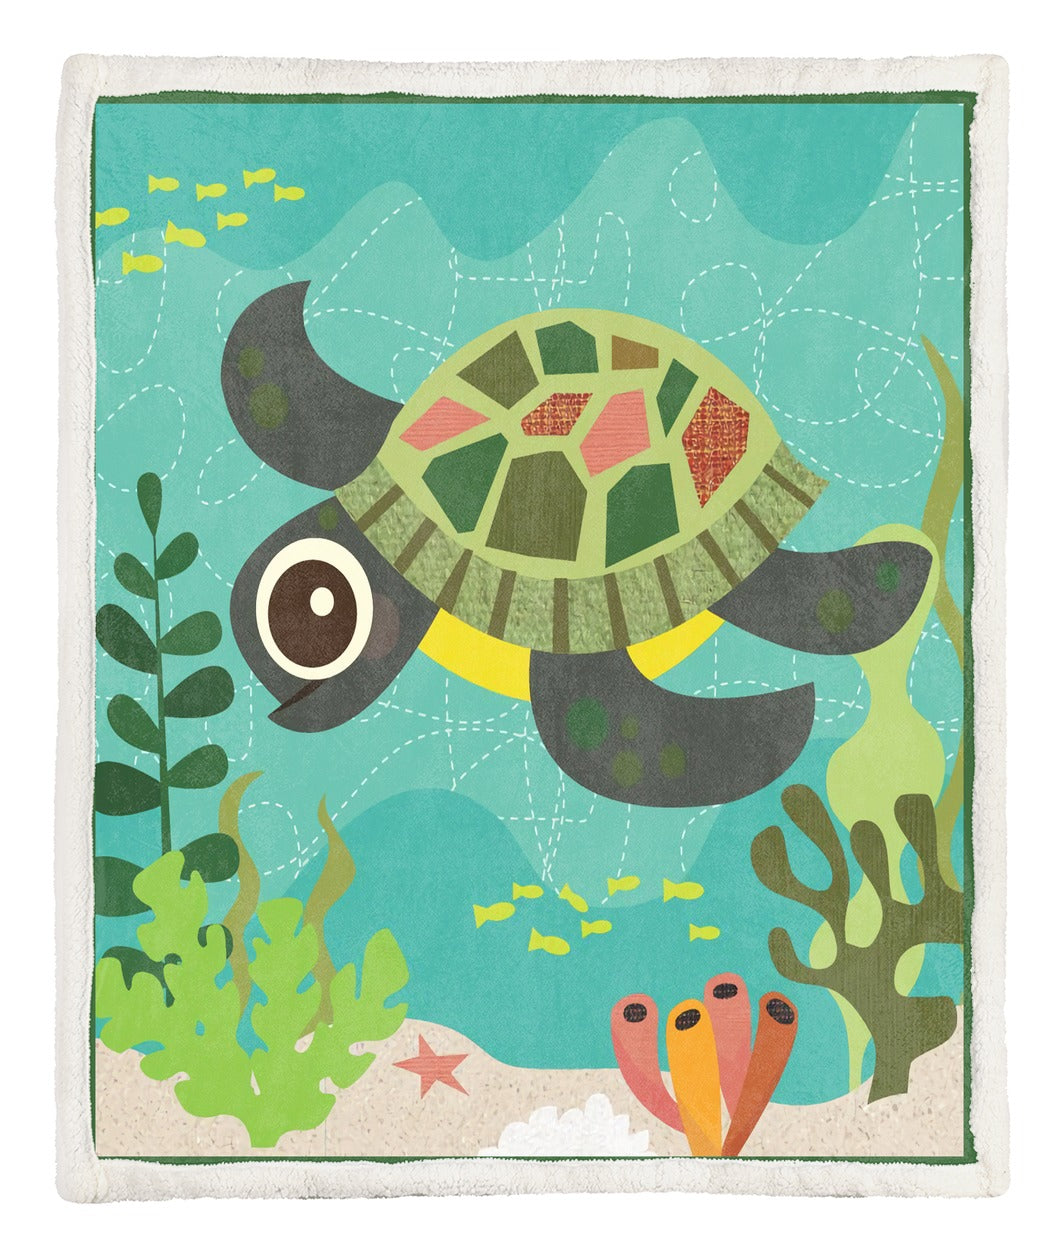 Turtle Throw Blanket TABBBB291027NB